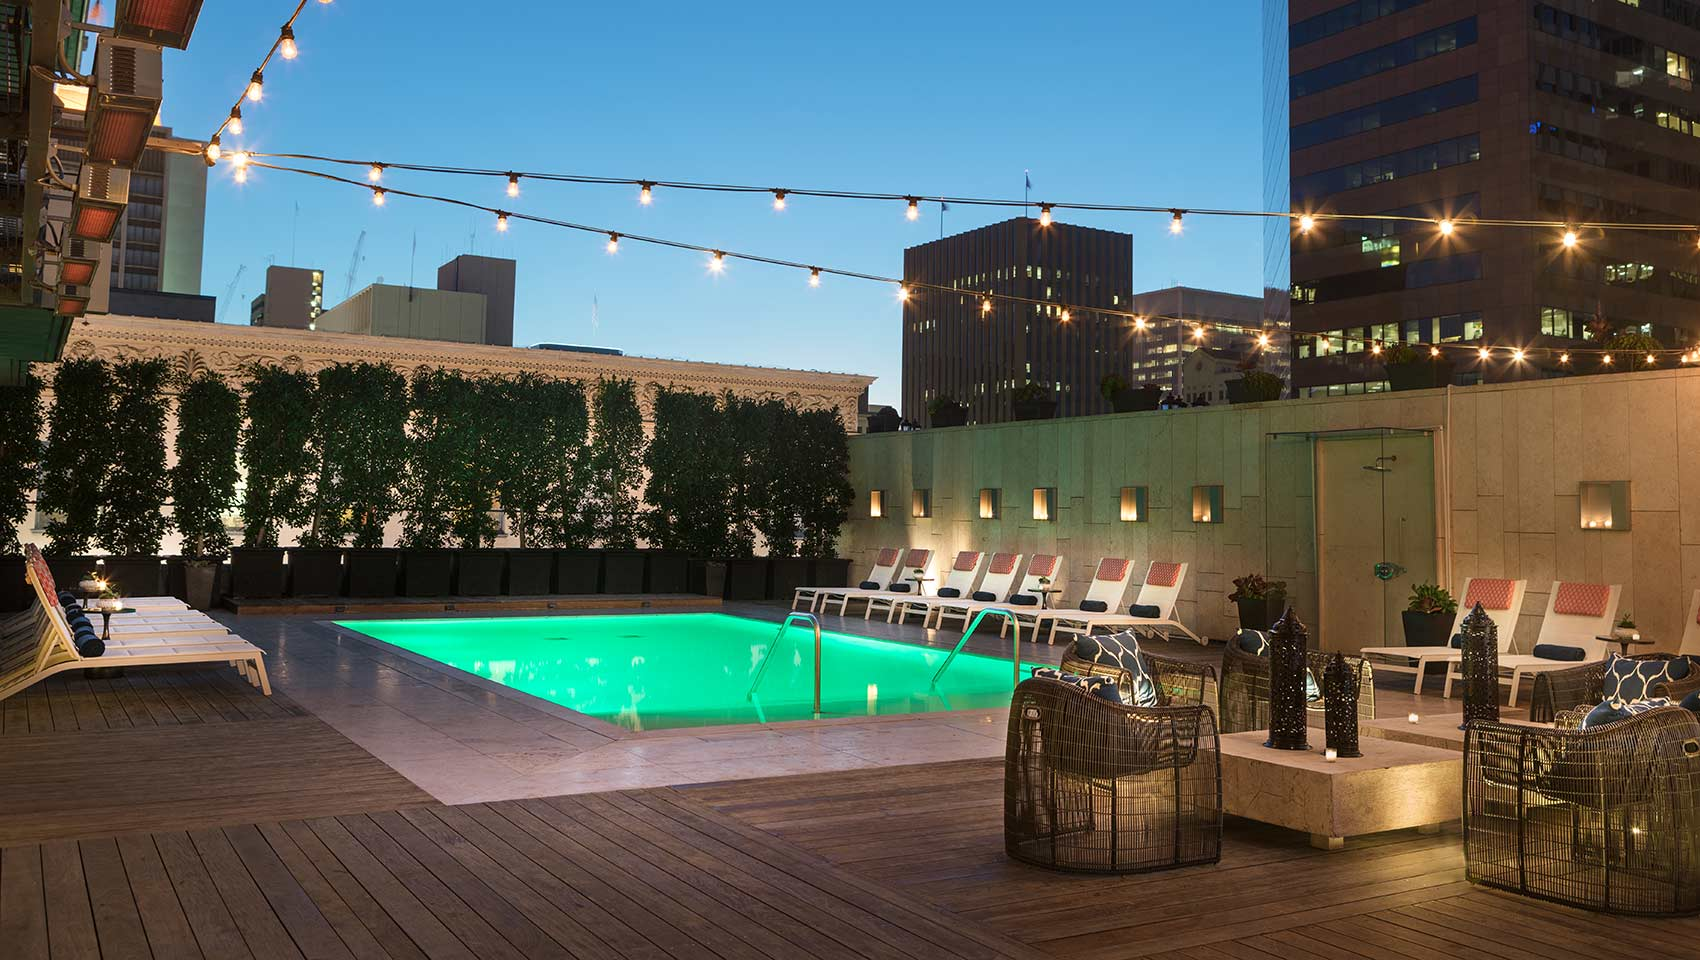 Amenities - The hotel features a pool, Complimentary wifi, Complimentary Wine Hour from 5-6pm +Coffee/Tea in mornings!Located just 3 miles from the San Diego Airport!